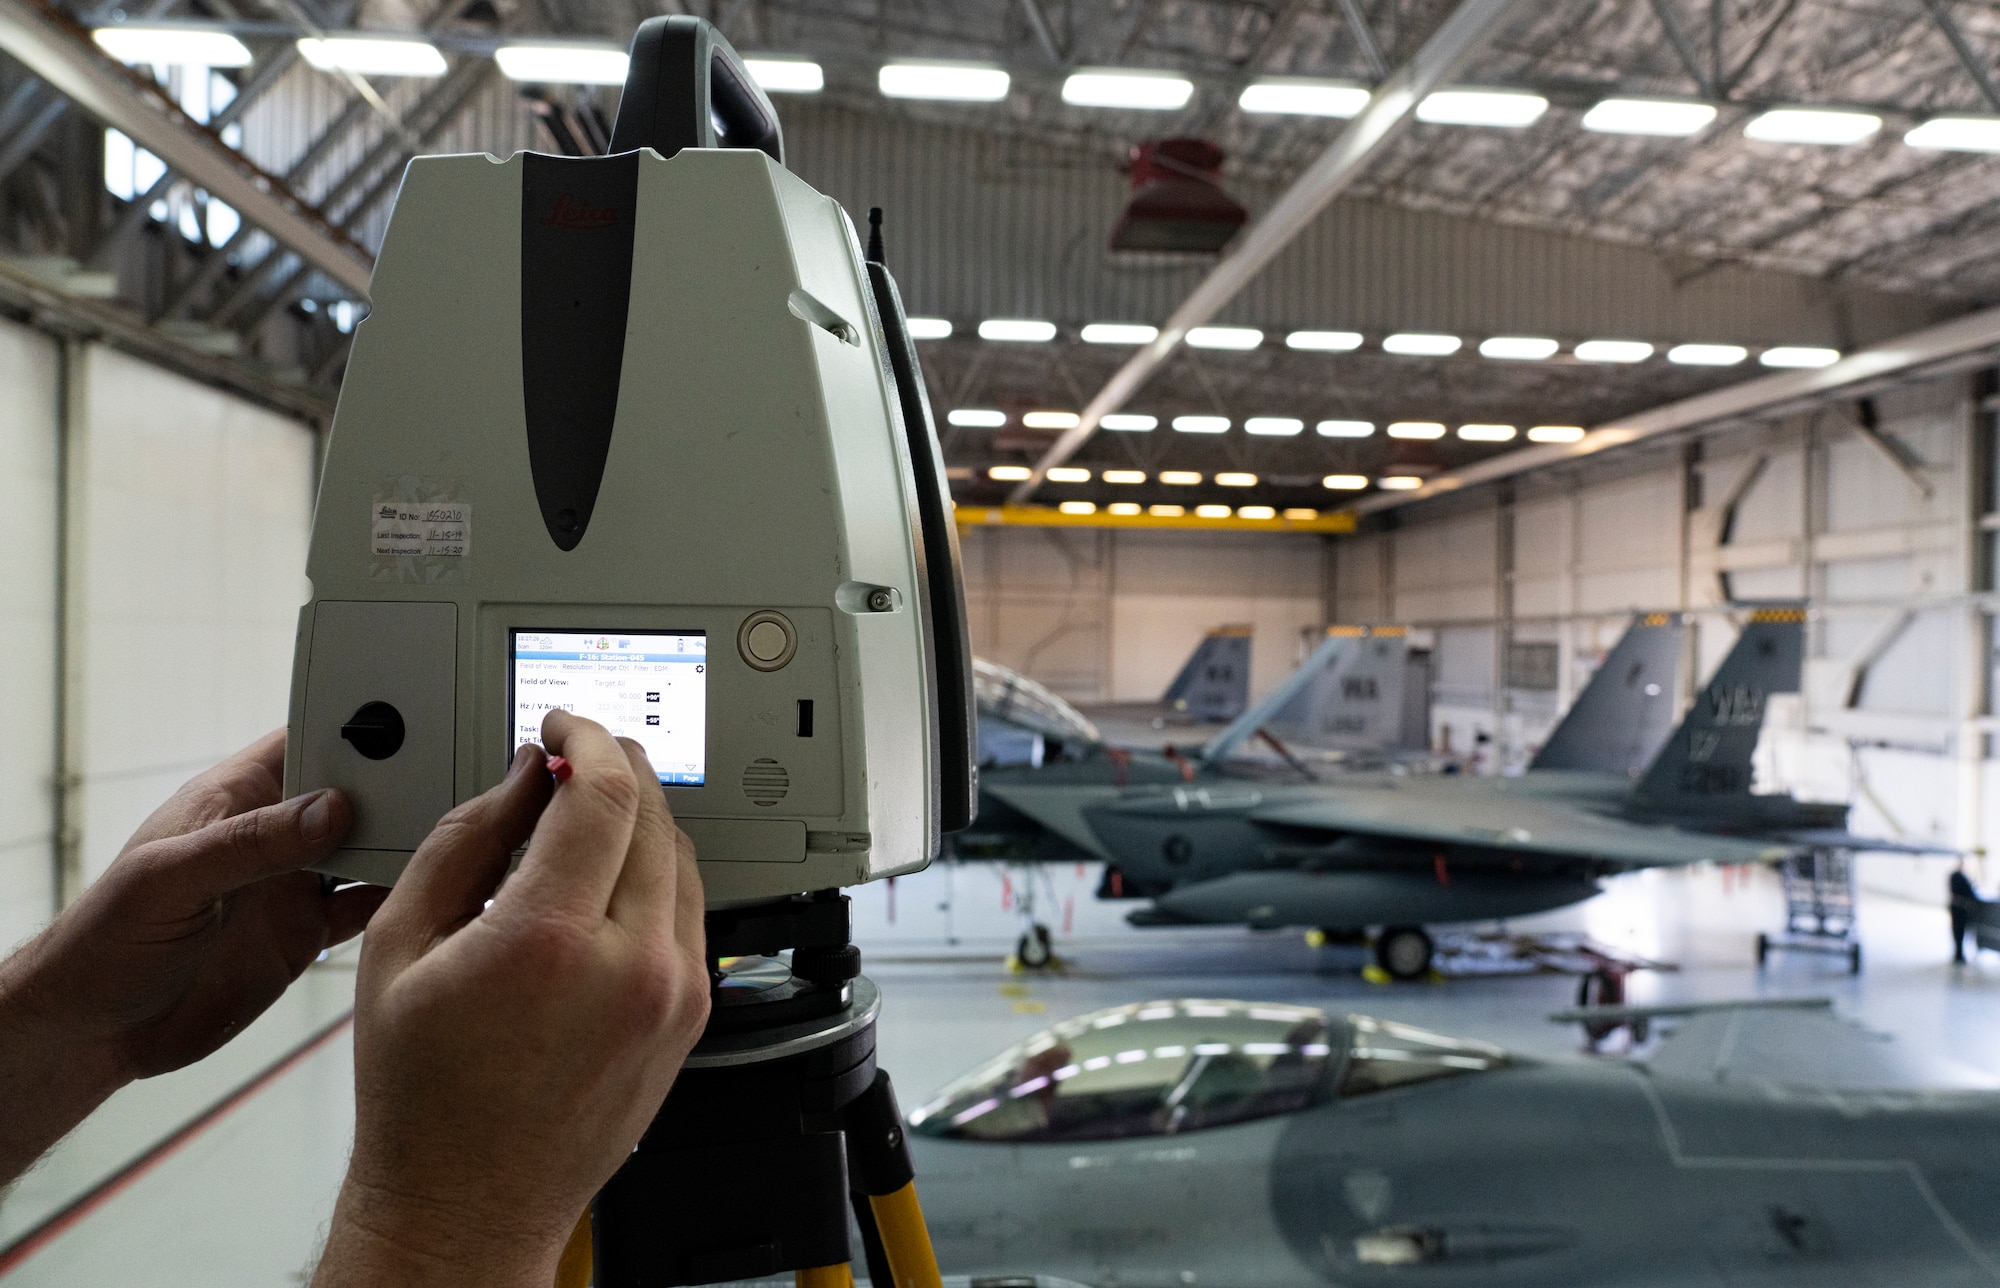 3d imaging equipment with planes in background